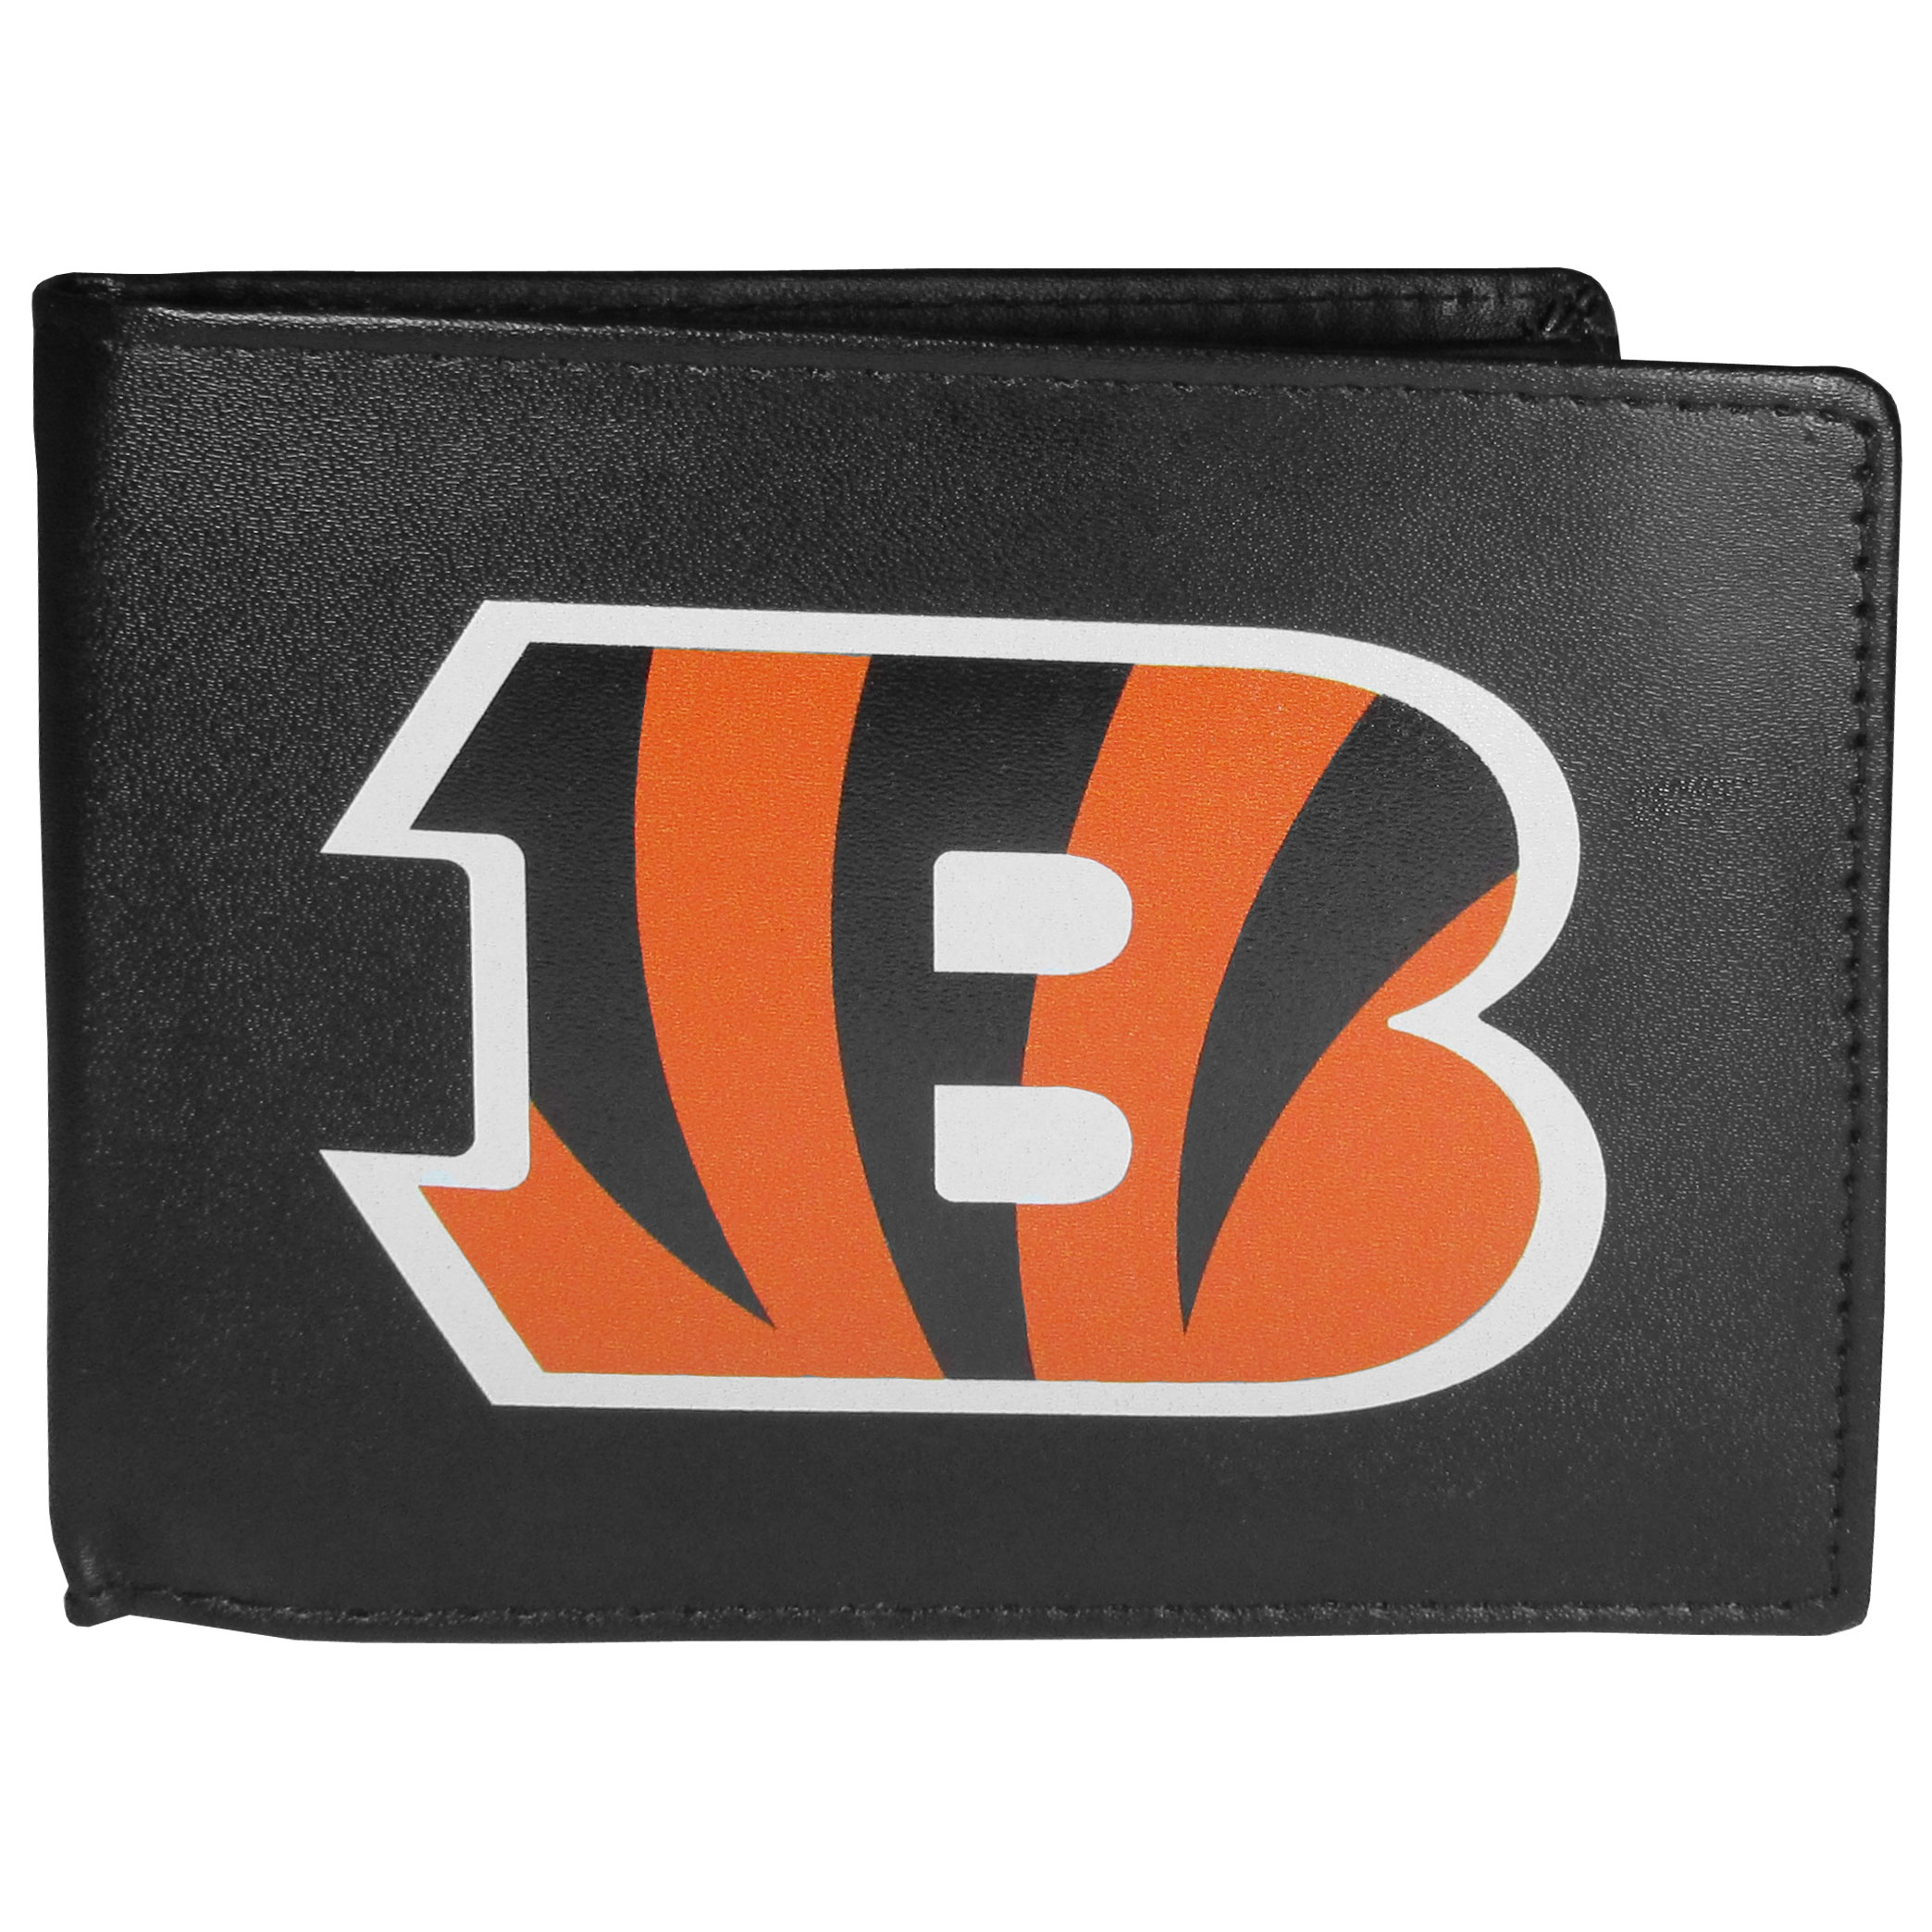 Cincinnati Bengals Leather Bi-fold Wallet, Large Logo - Our classic fine leather bi-fold wallet is meticulously crafted with genuine leather that will age beautifully so you will have a quality wallet for years to come. The wallet opens to a large, billfold pocket and numerous credit card slots and has a convenient windowed ID slot. The front of the wallet features an extra large Cincinnati Bengals printed logo.